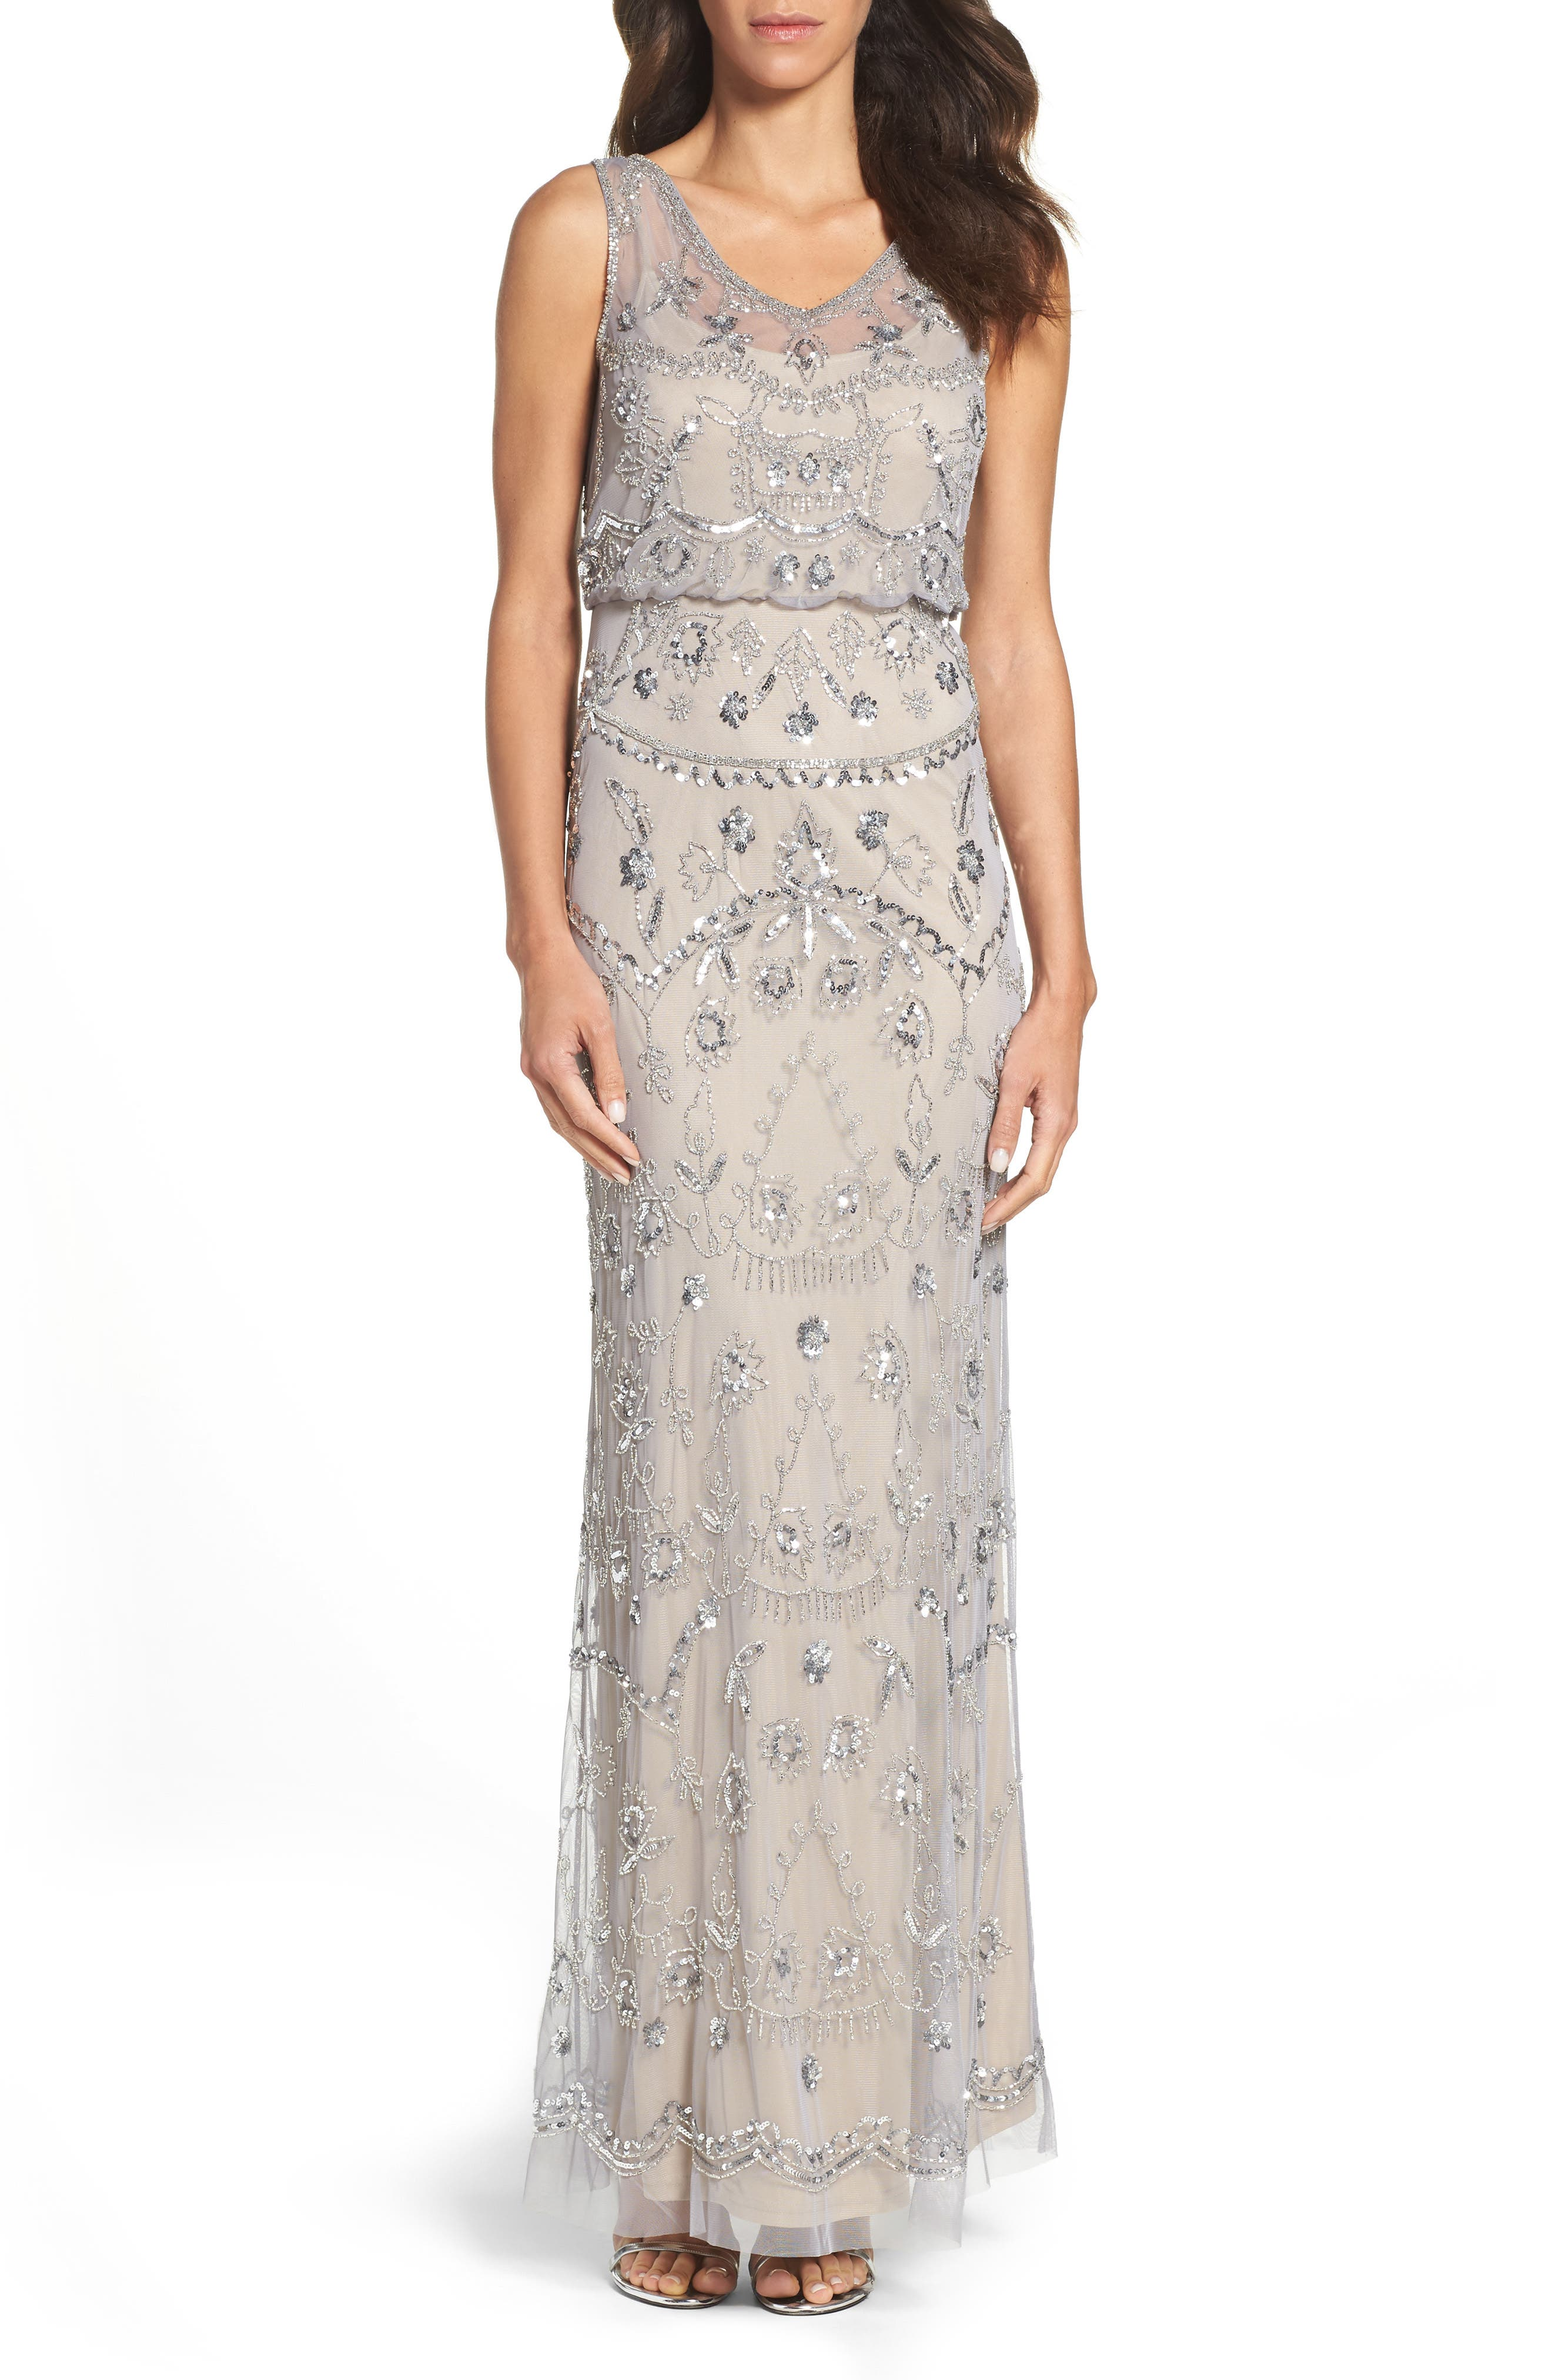 Adrianna Pappell Beaded Mesh Blouson Gown